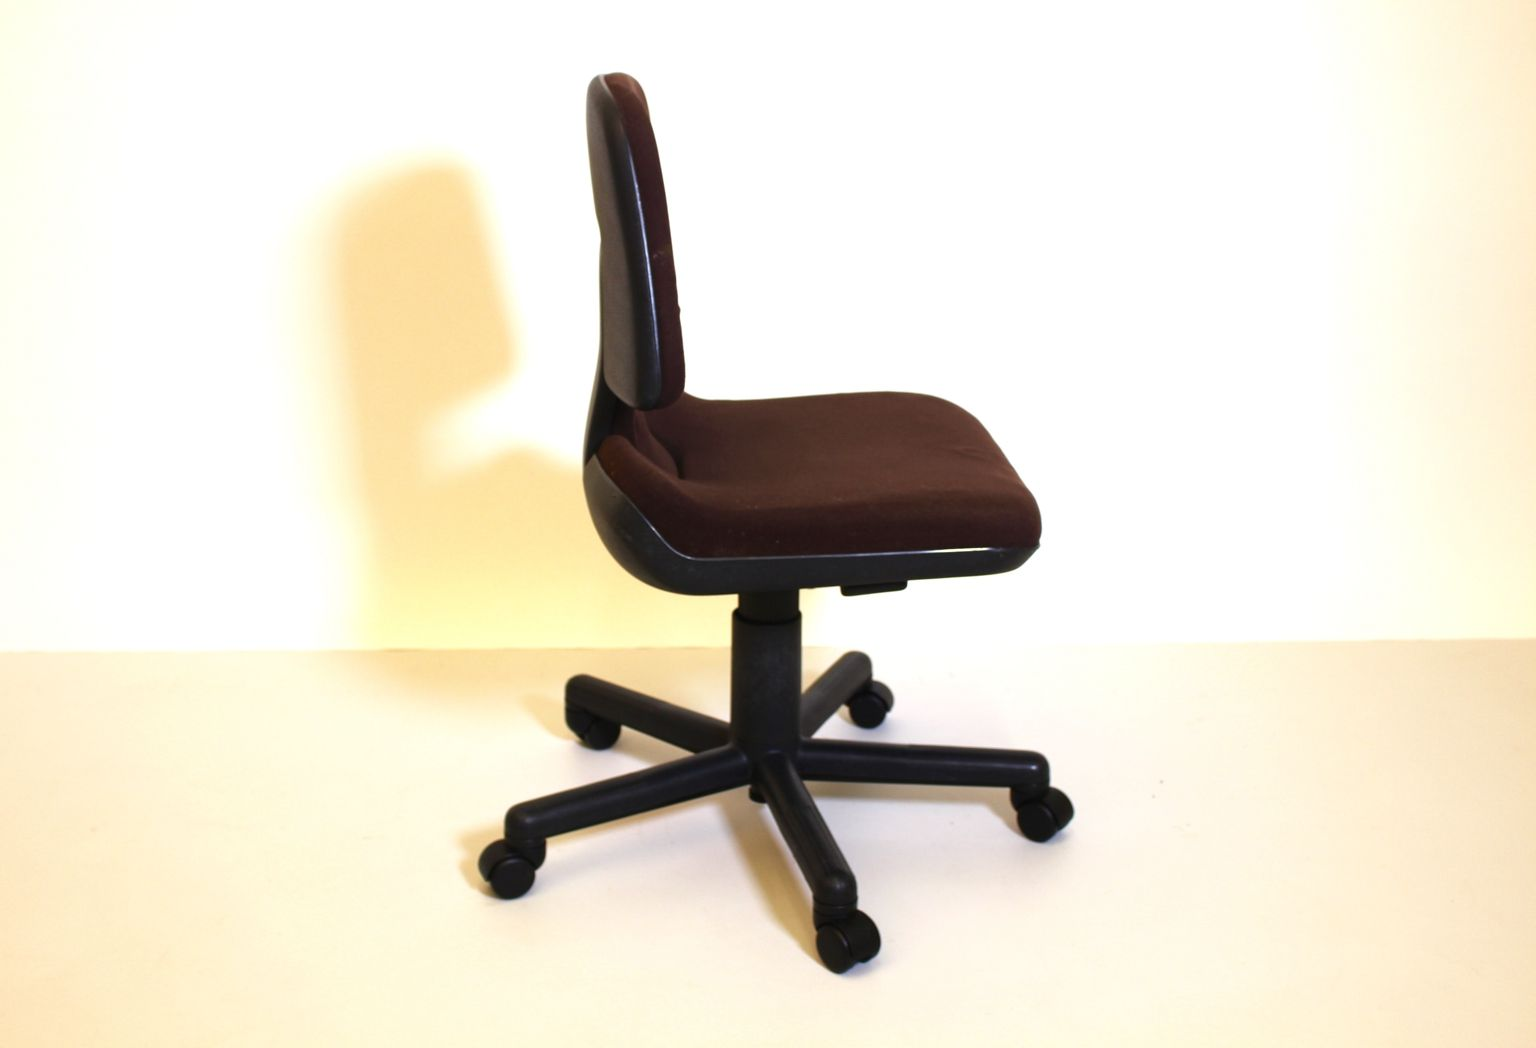 vitramat office chair by wolfgang mueller deisig for vitra 1976 for sale at pamono. Black Bedroom Furniture Sets. Home Design Ideas